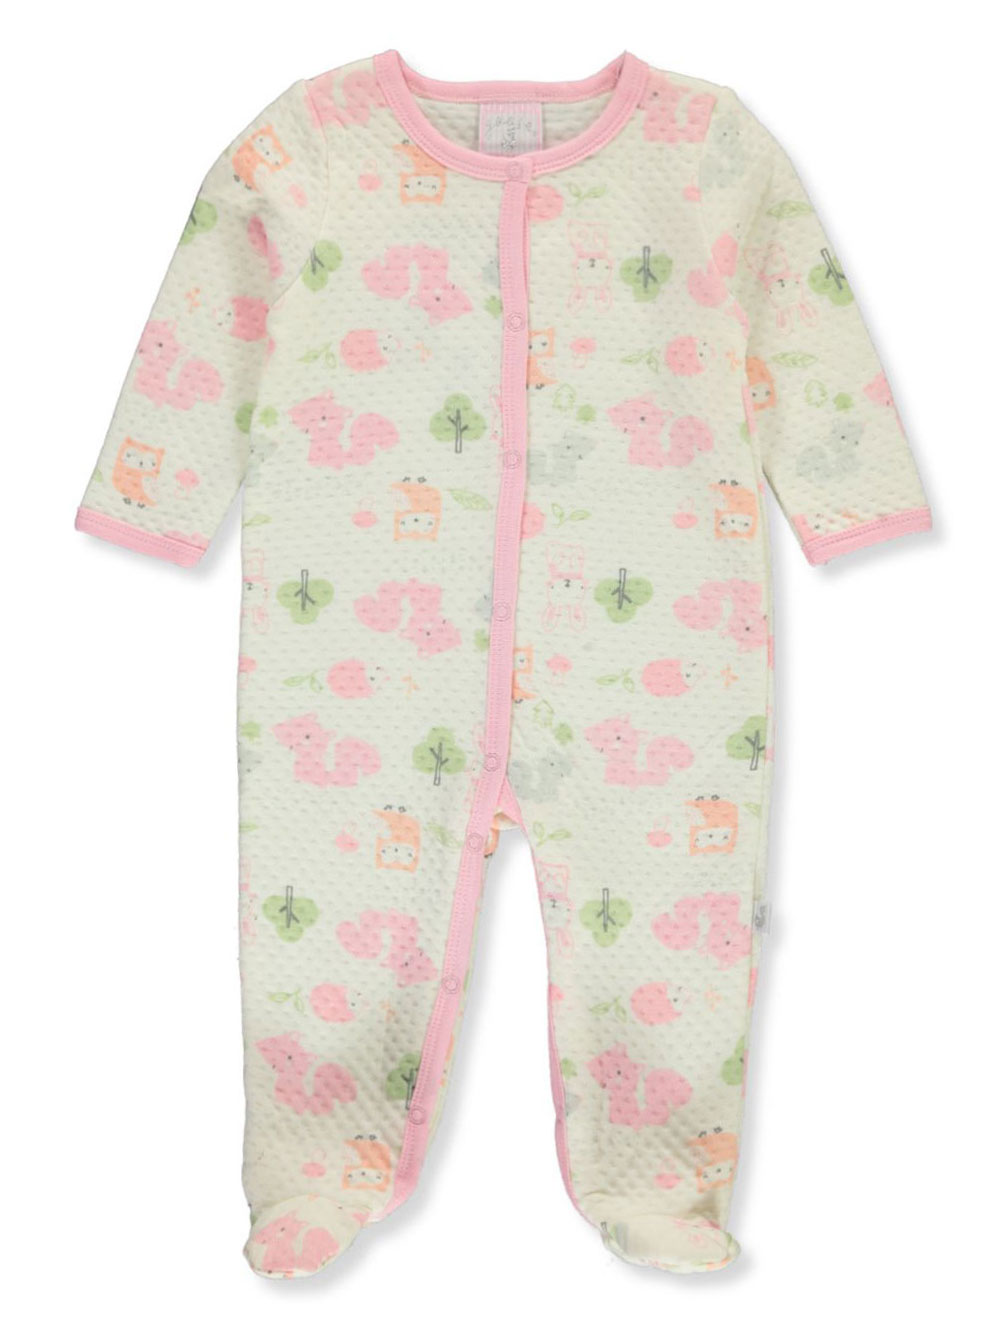 Ivory and Multicolor Coveralls